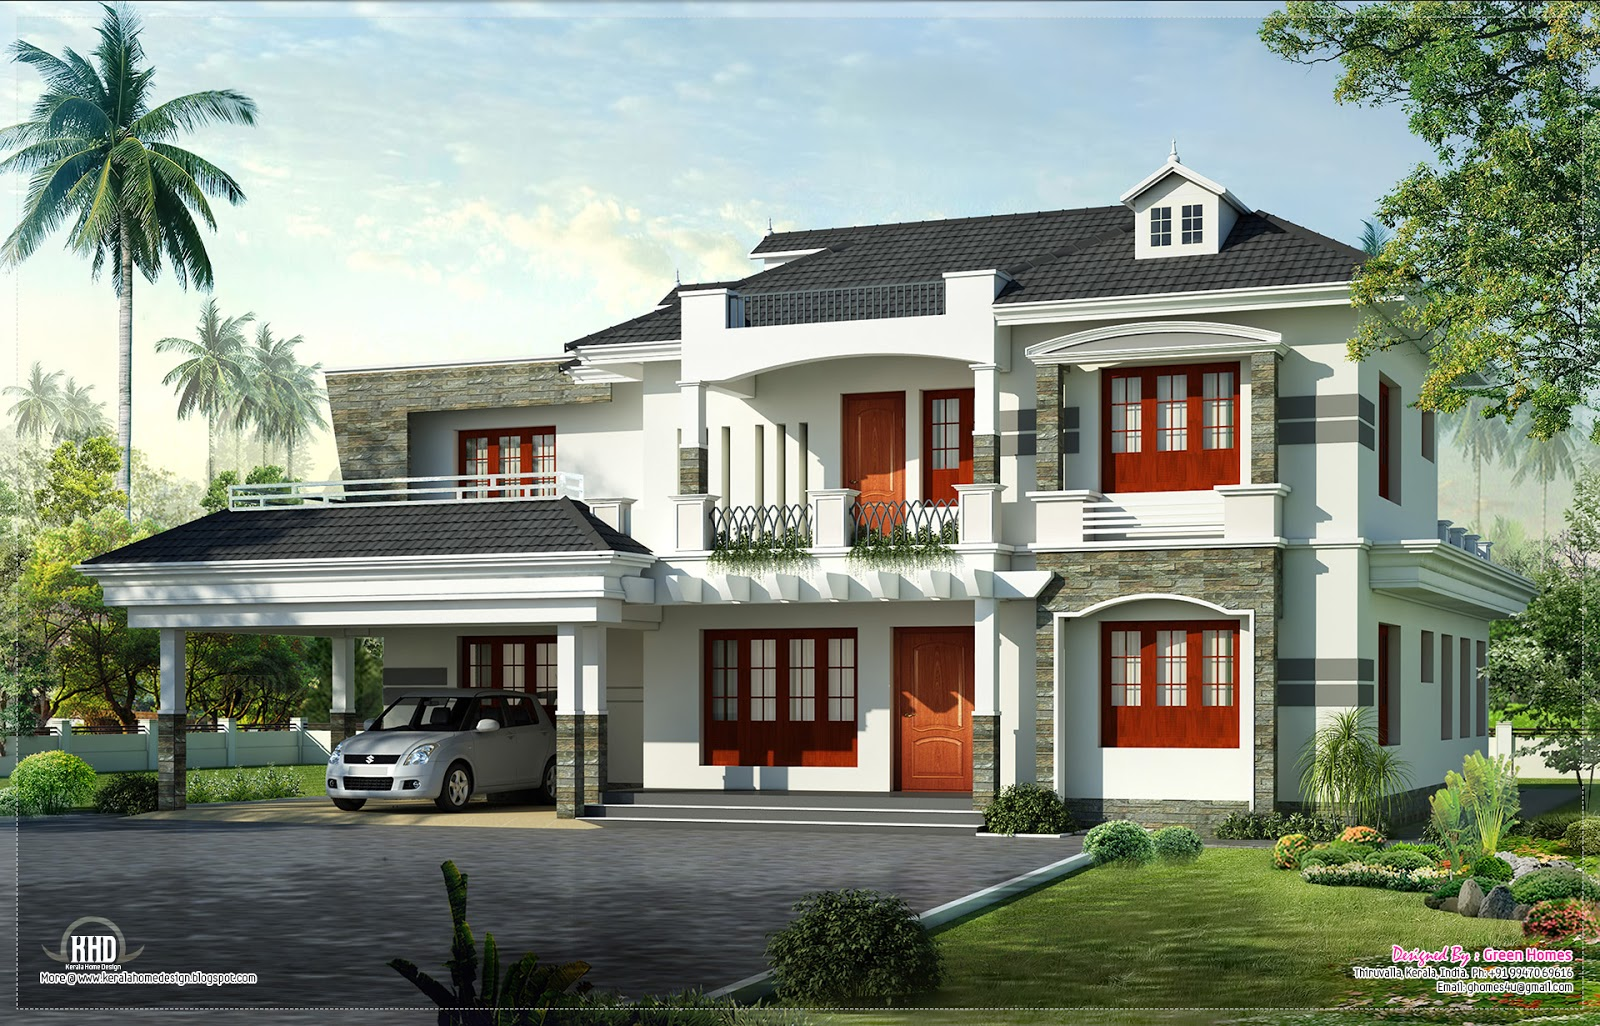 New style Kerala luxury home exterior - Kerala home design and floor ...